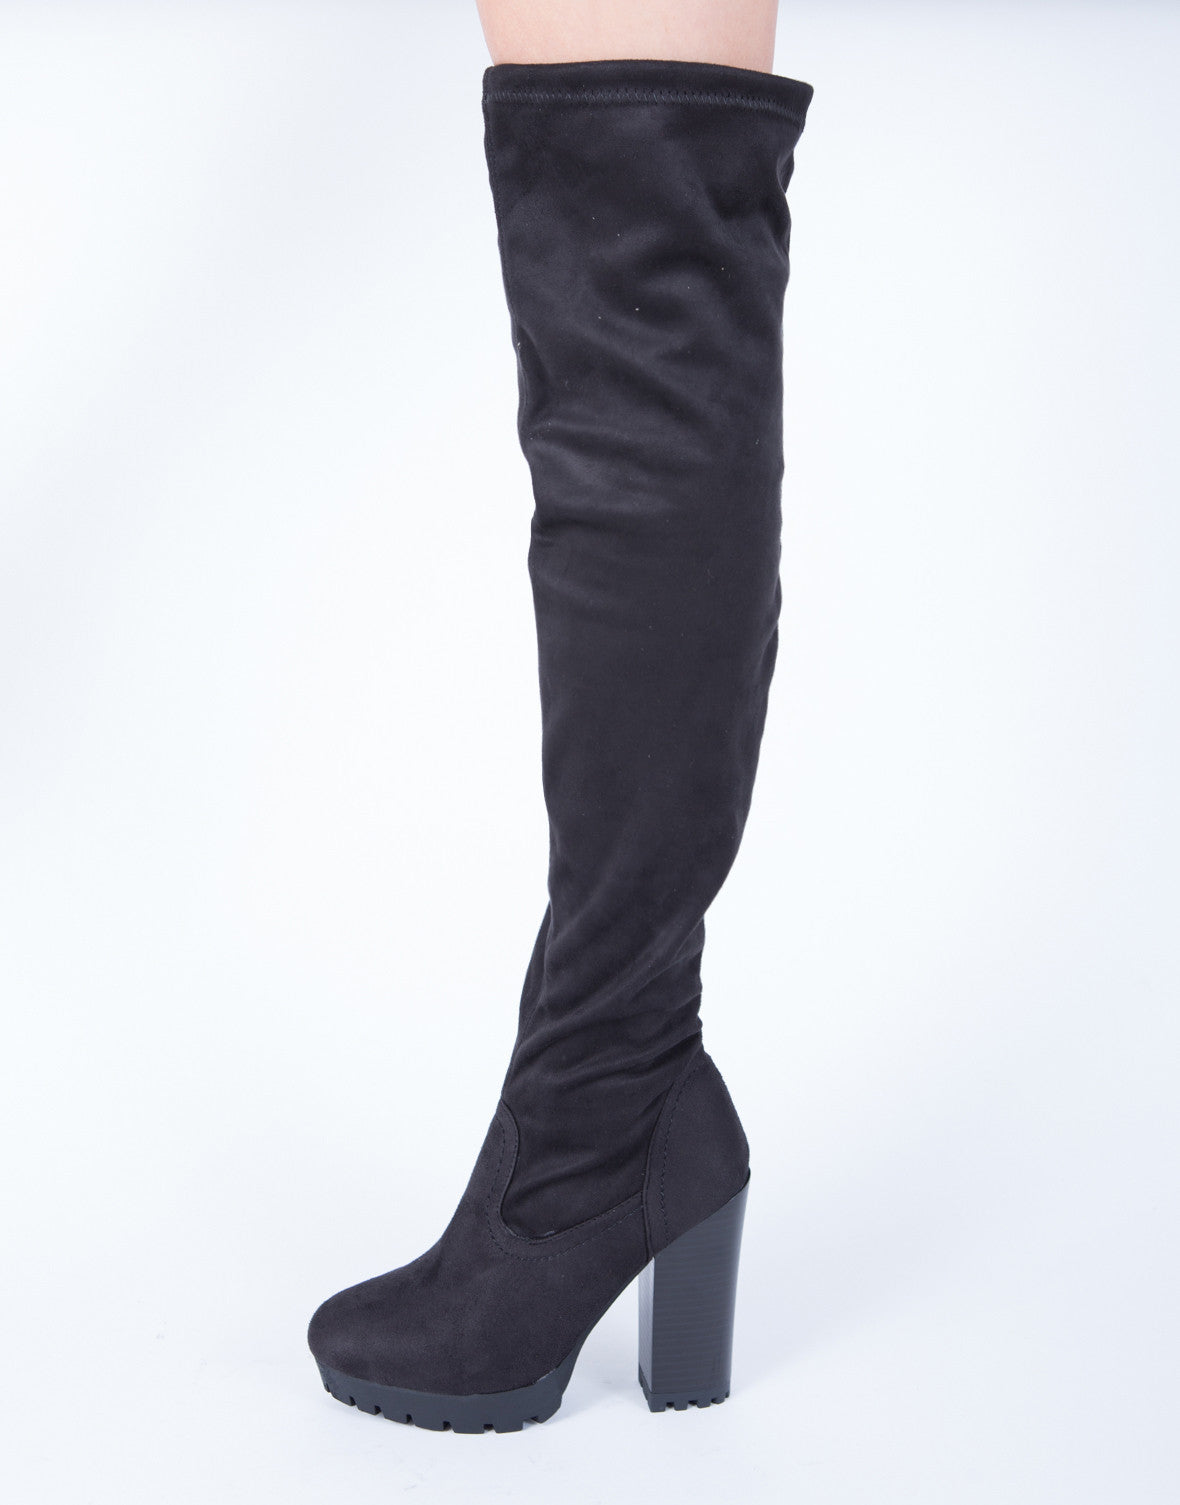 Give'Em Edge Over-the-Knee Boots